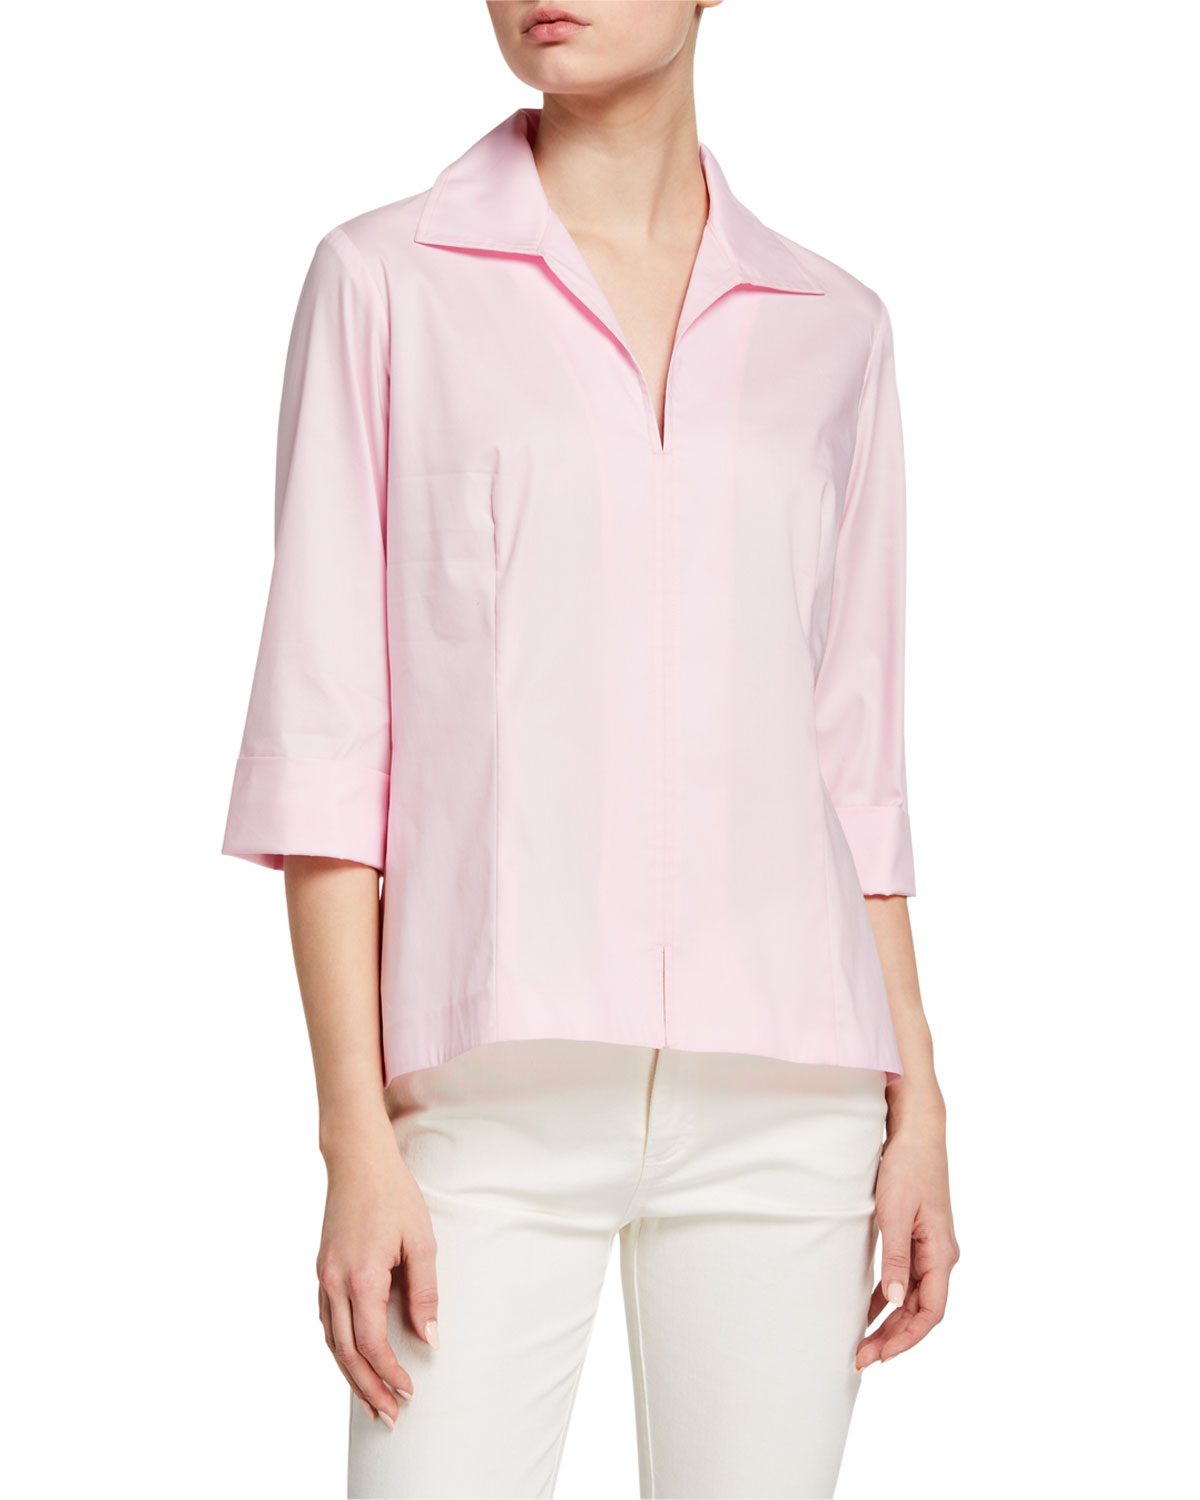 Finley 3/4-Sleeve Stretch Cotton Swing Shirt